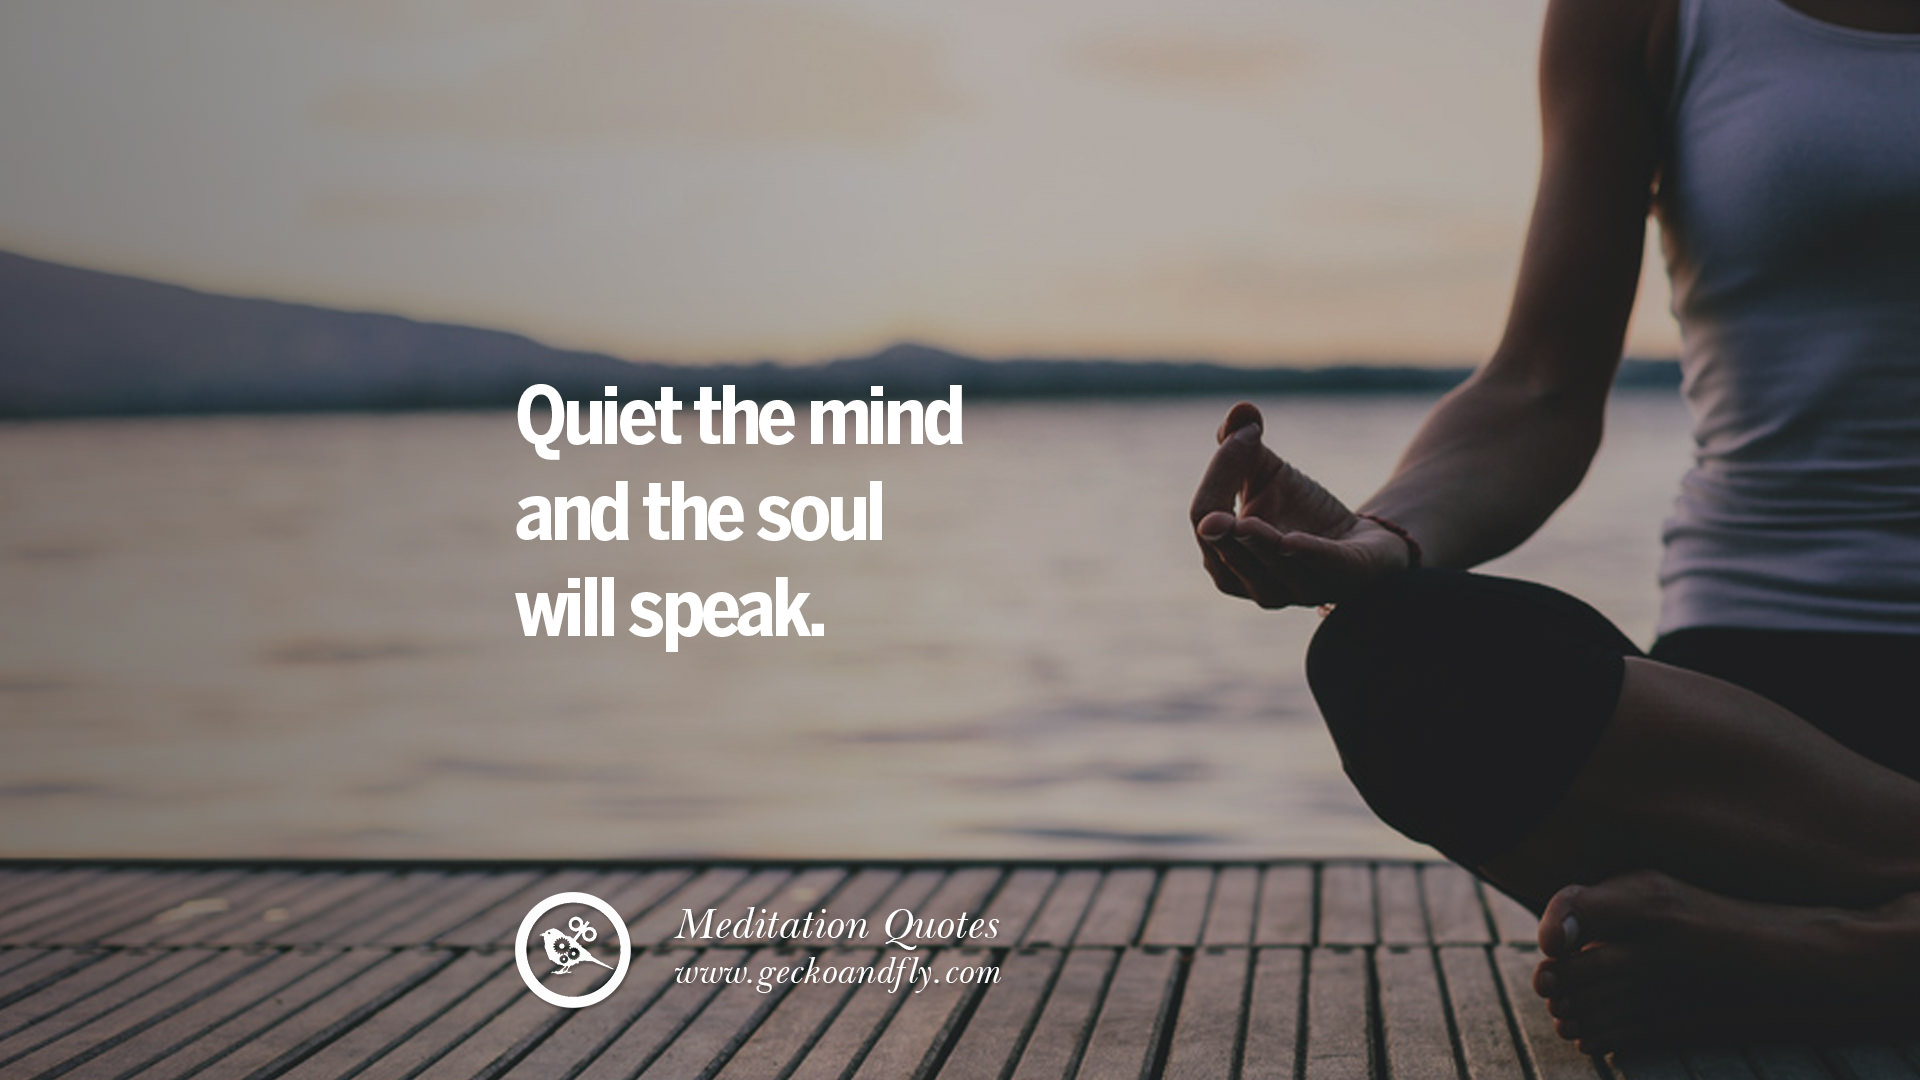 36 Quotes On Mindfulness Meditation For Yoga, Sleeping, And